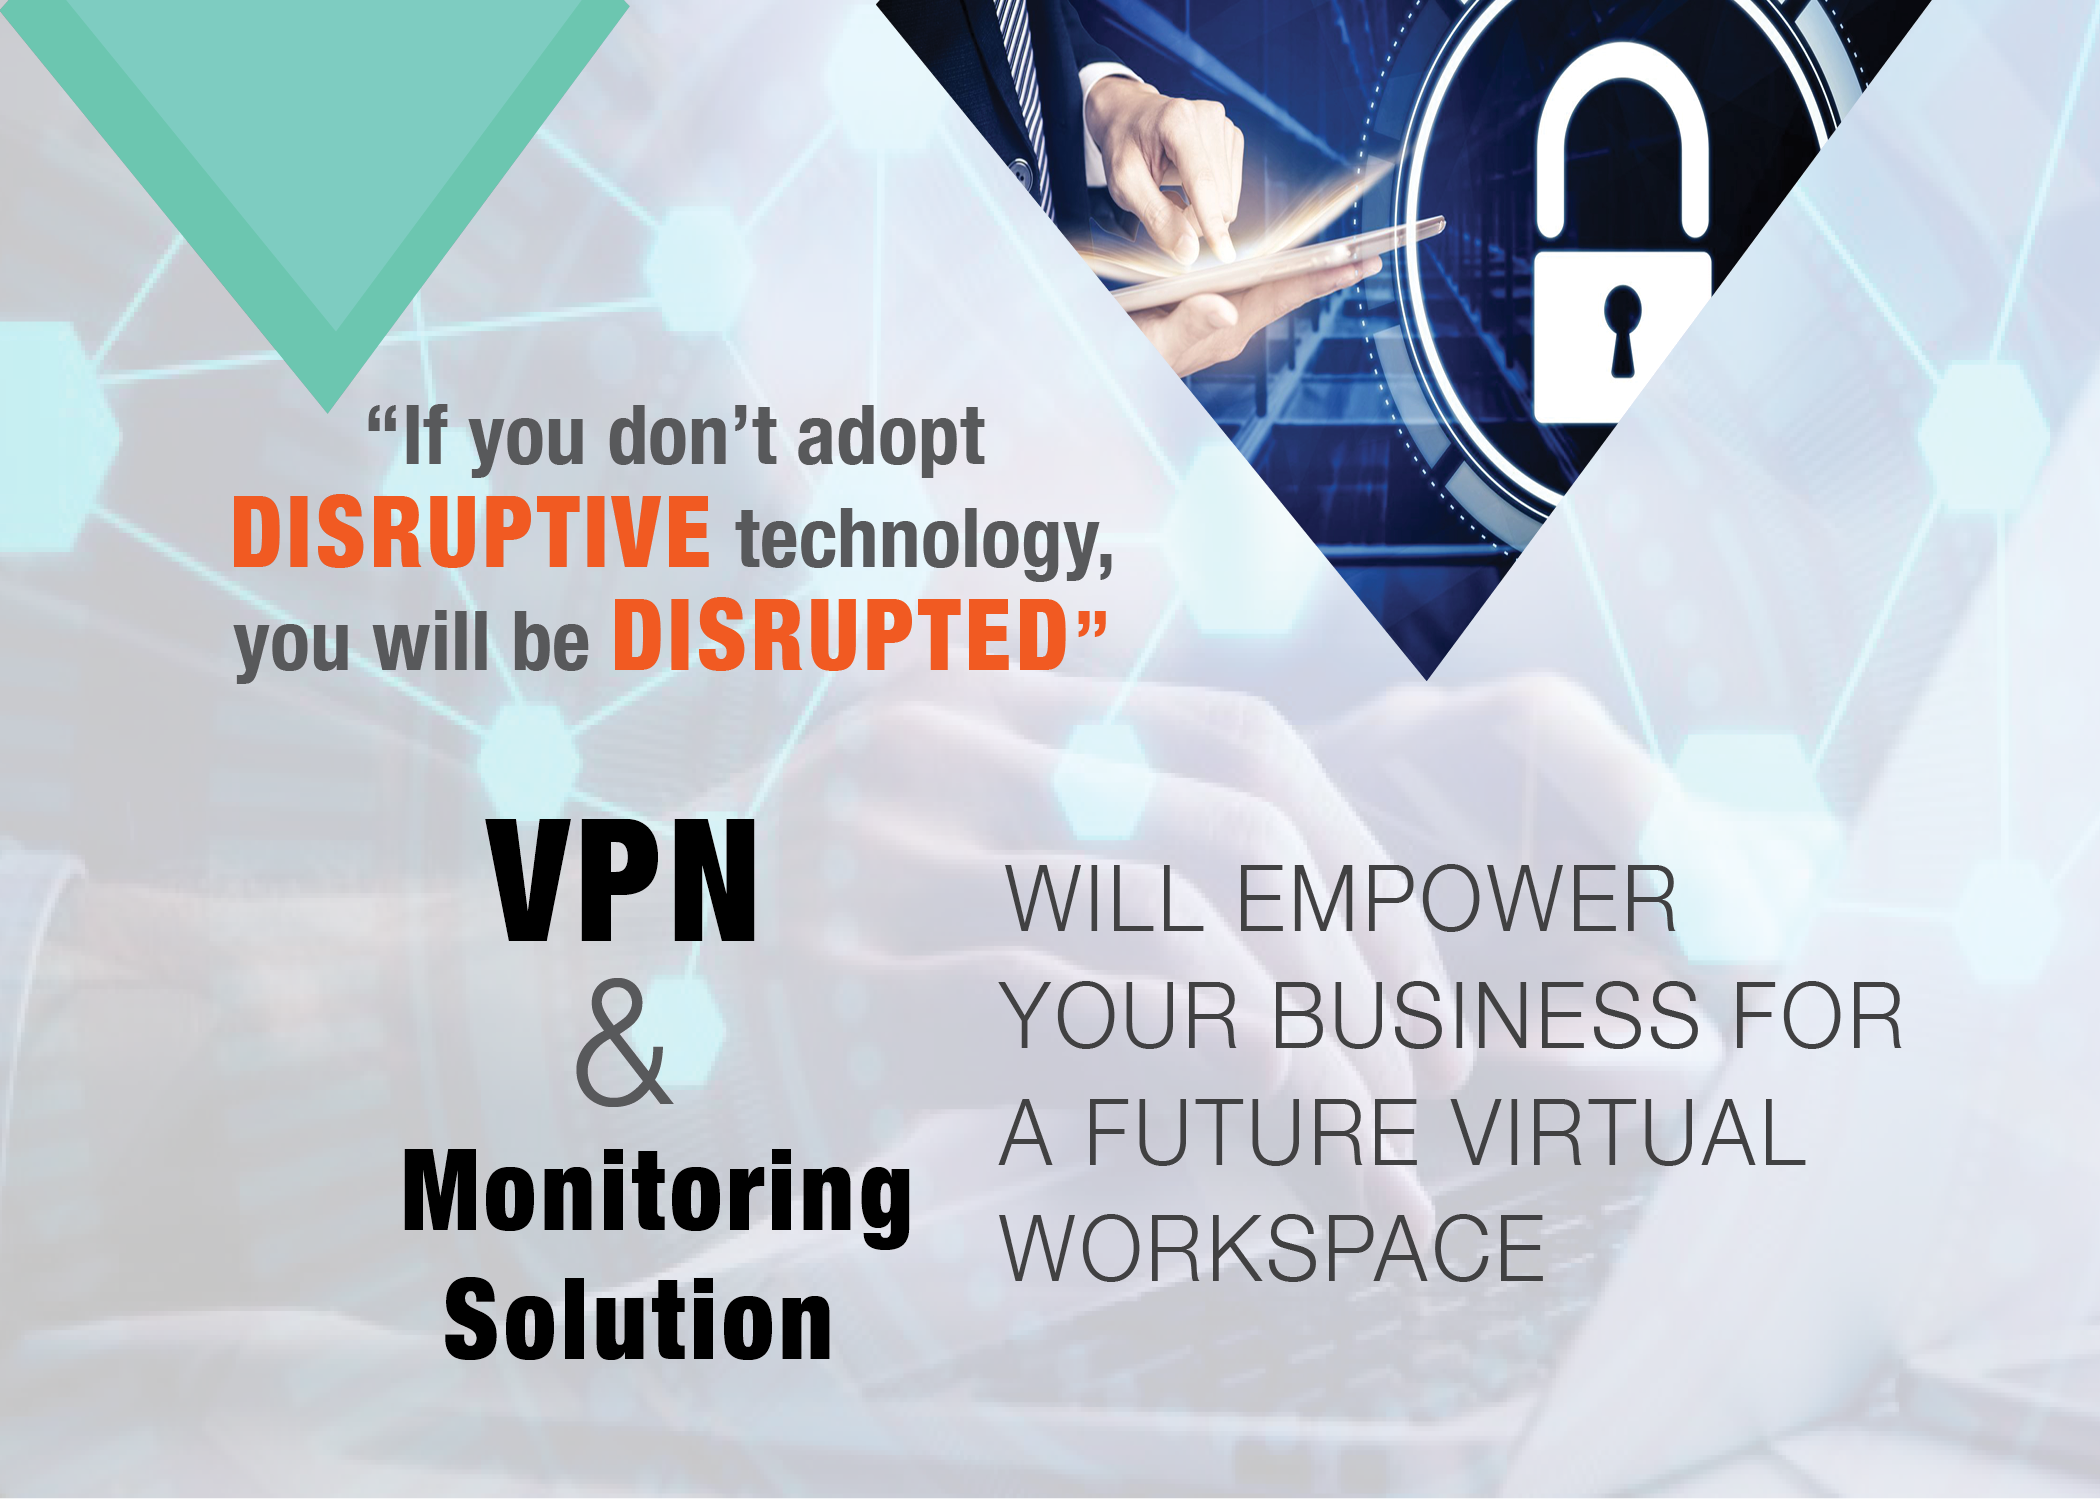 Future proof your company by getting a VPN solution and a monitoring platform for a virtual workspace